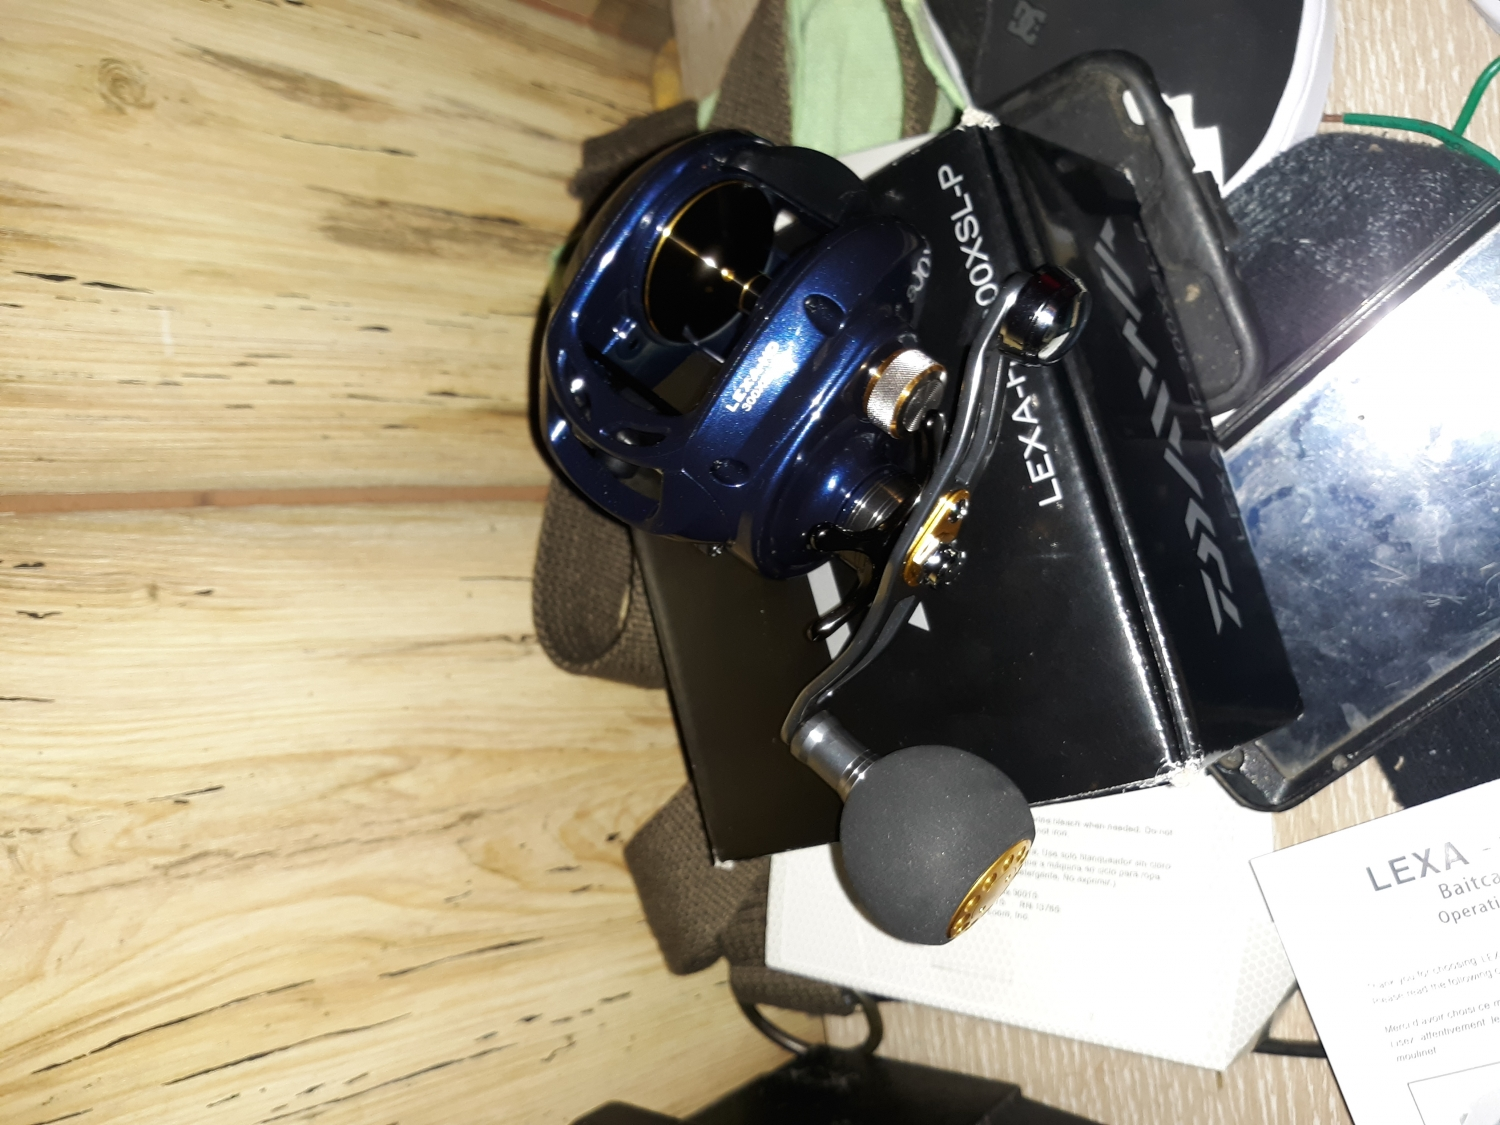 8c49798b2bd Nice reel, strong drag. Haven't got to fully test the drag but the casting  adjustments are nice! Perfect for the inshore fishing I'll use it on  primarily